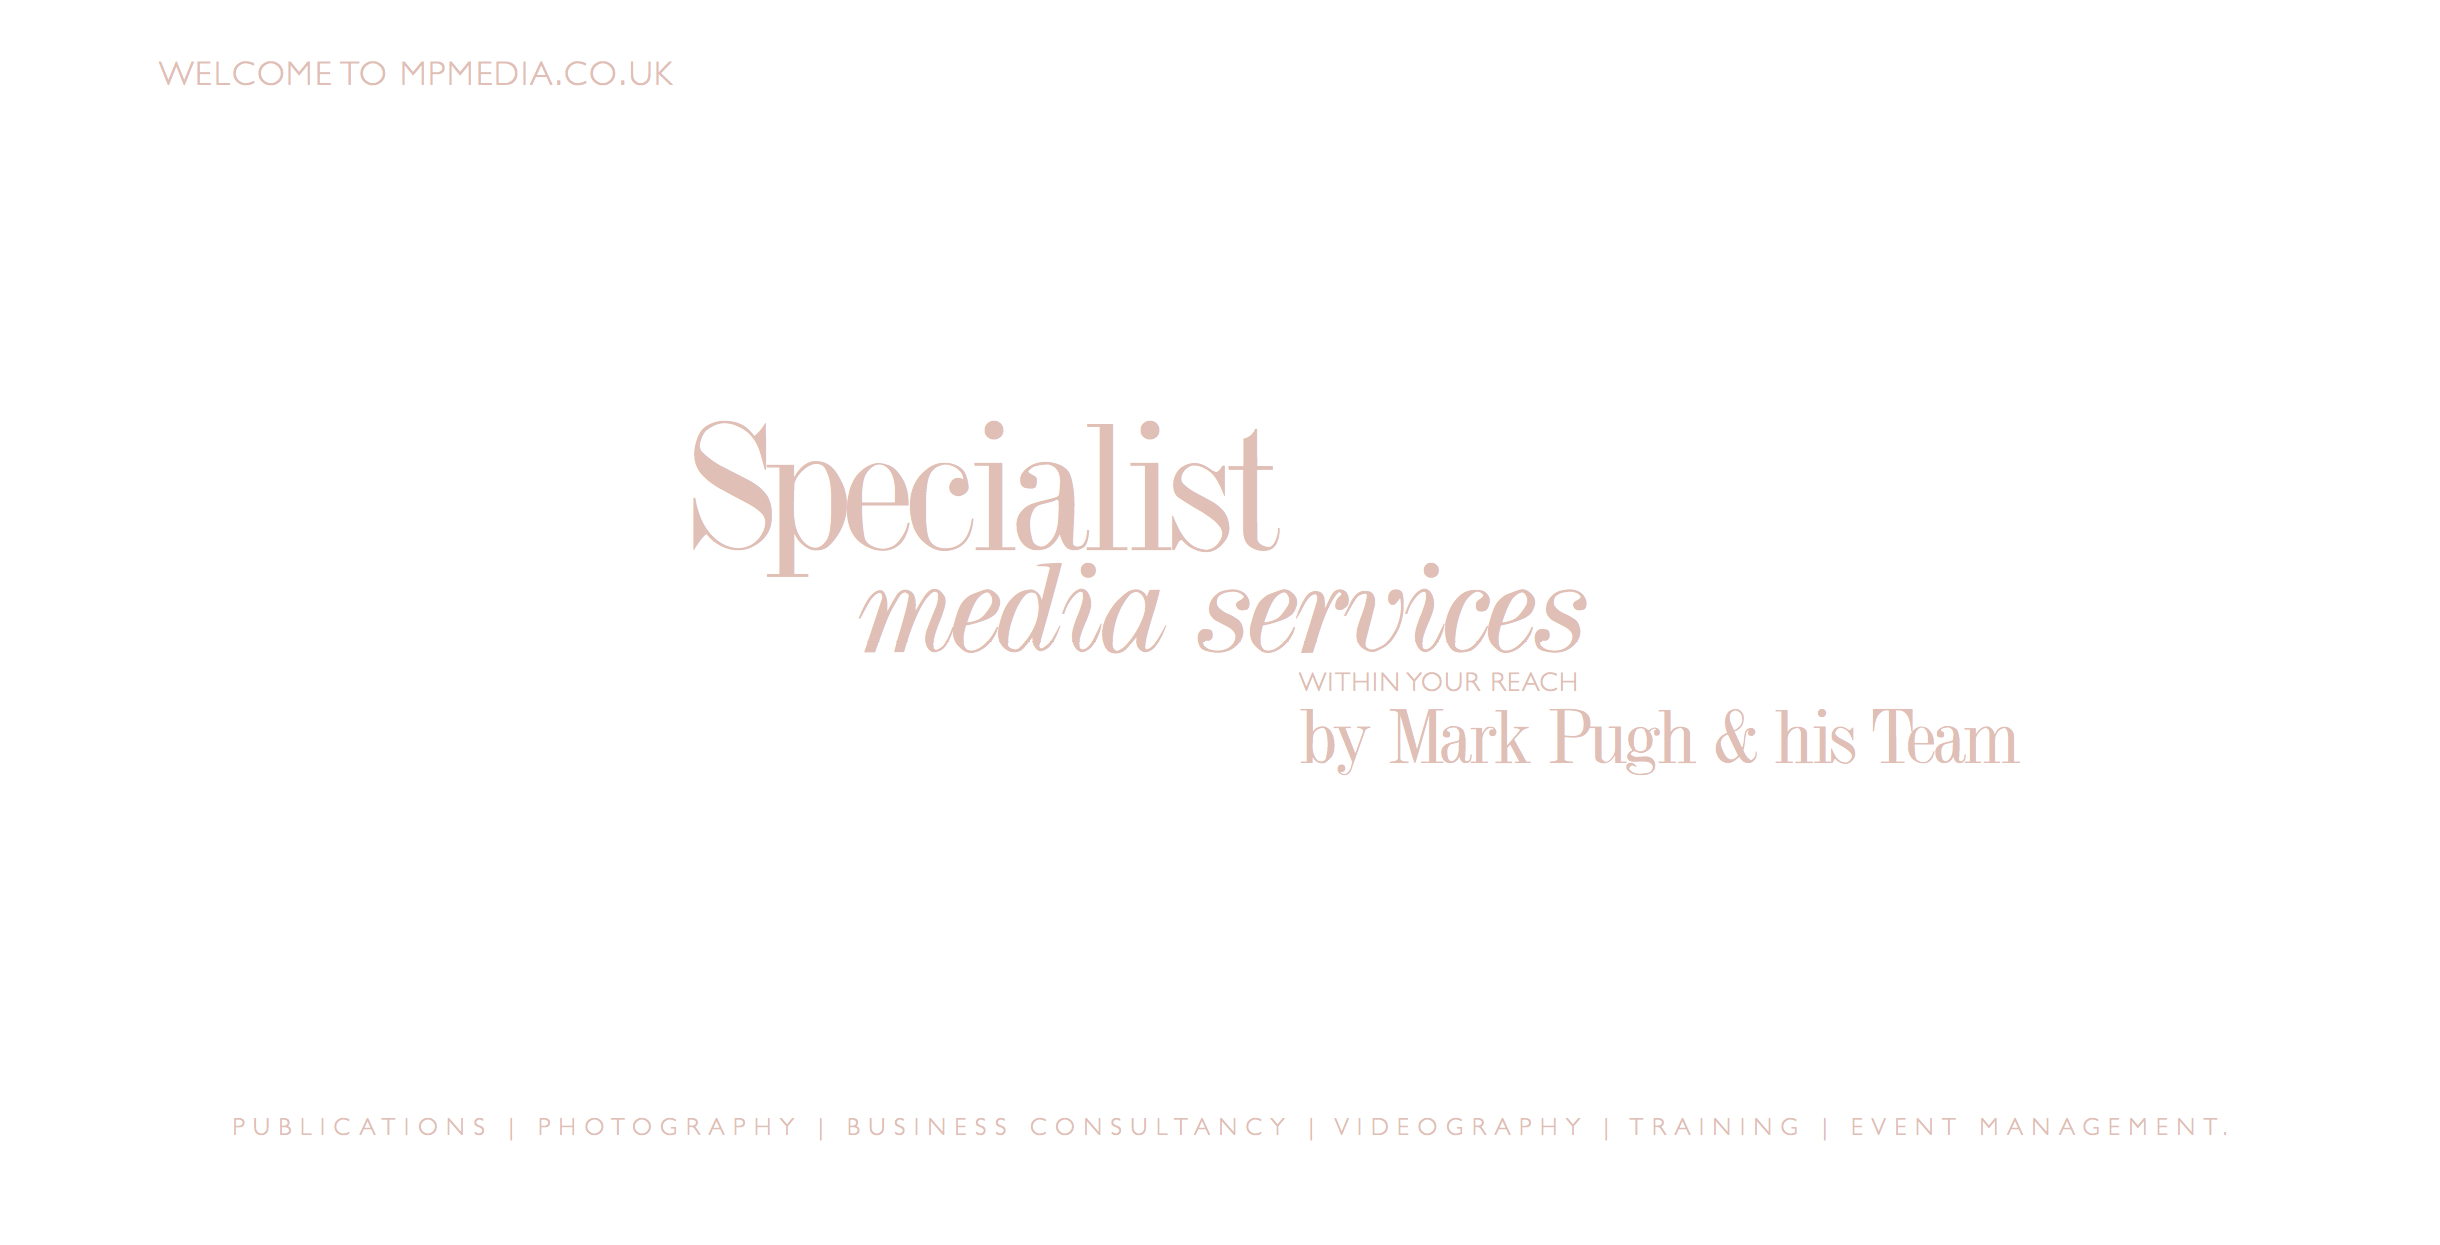 Specialist services by Mark Pugh and his Team copy.jpg